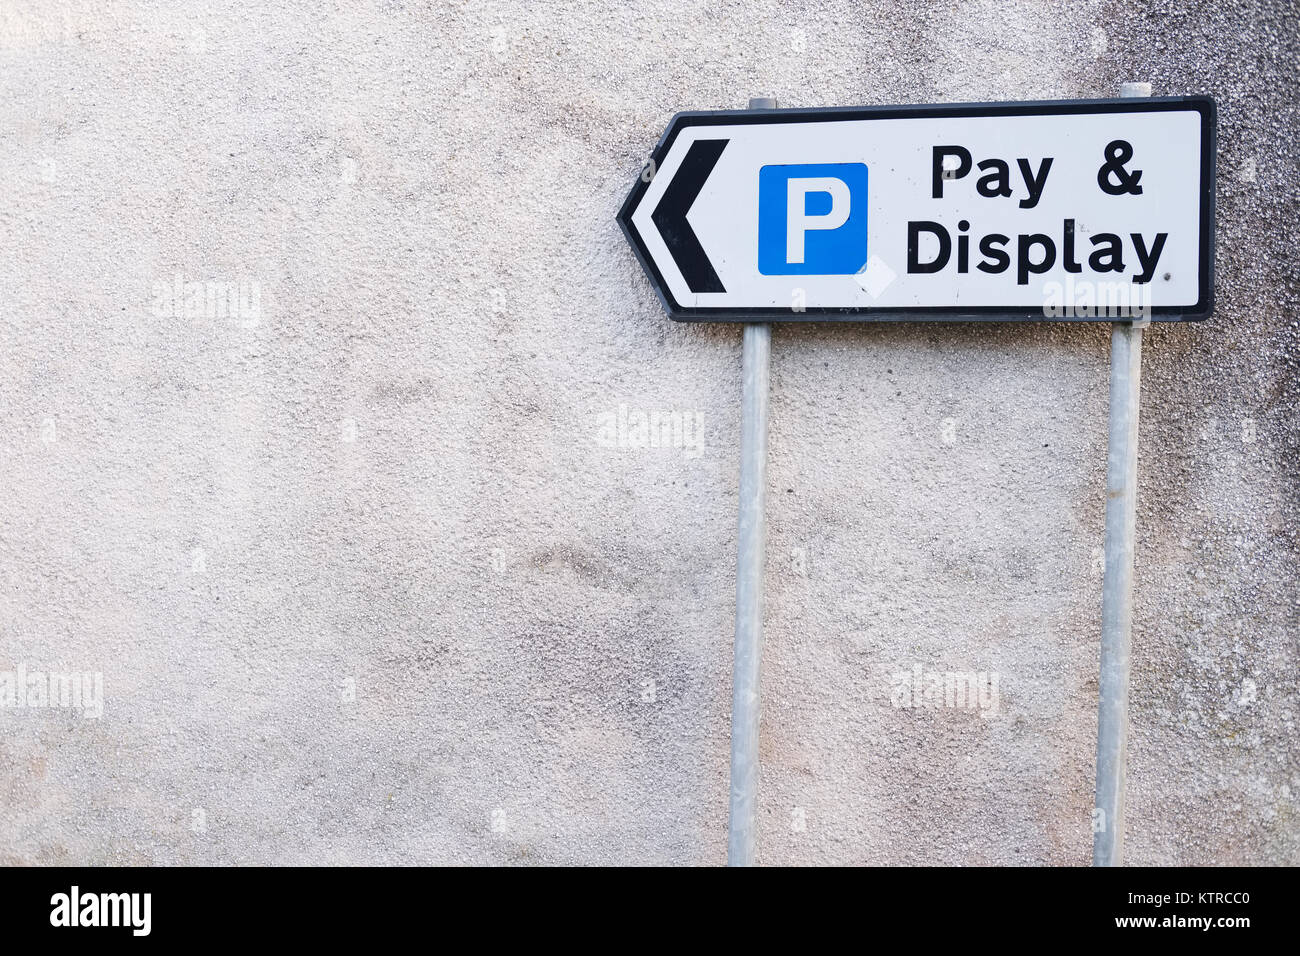 Pay and Display Sign on Wall with Directions given by Arrow - Stock Image